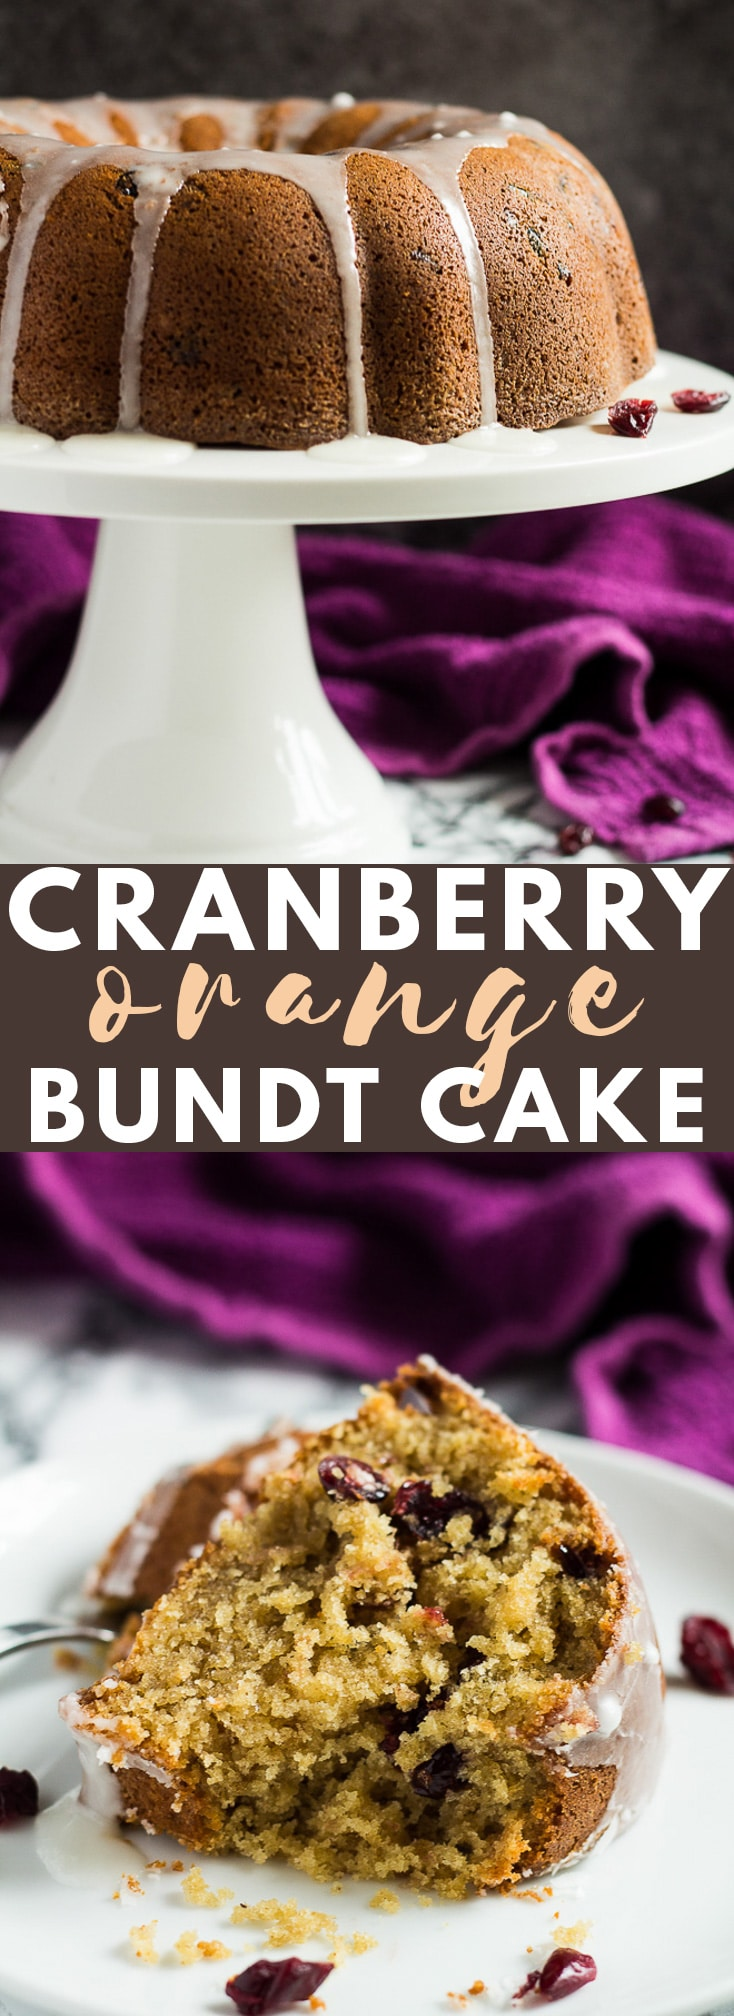 Cranberry Orange Bundt Cake – A deliciously moist and fluffy cinnamon-spiced, orange-infused bundt cake stuffed full of sweet cranberries, and drizzled with an orange glaze!